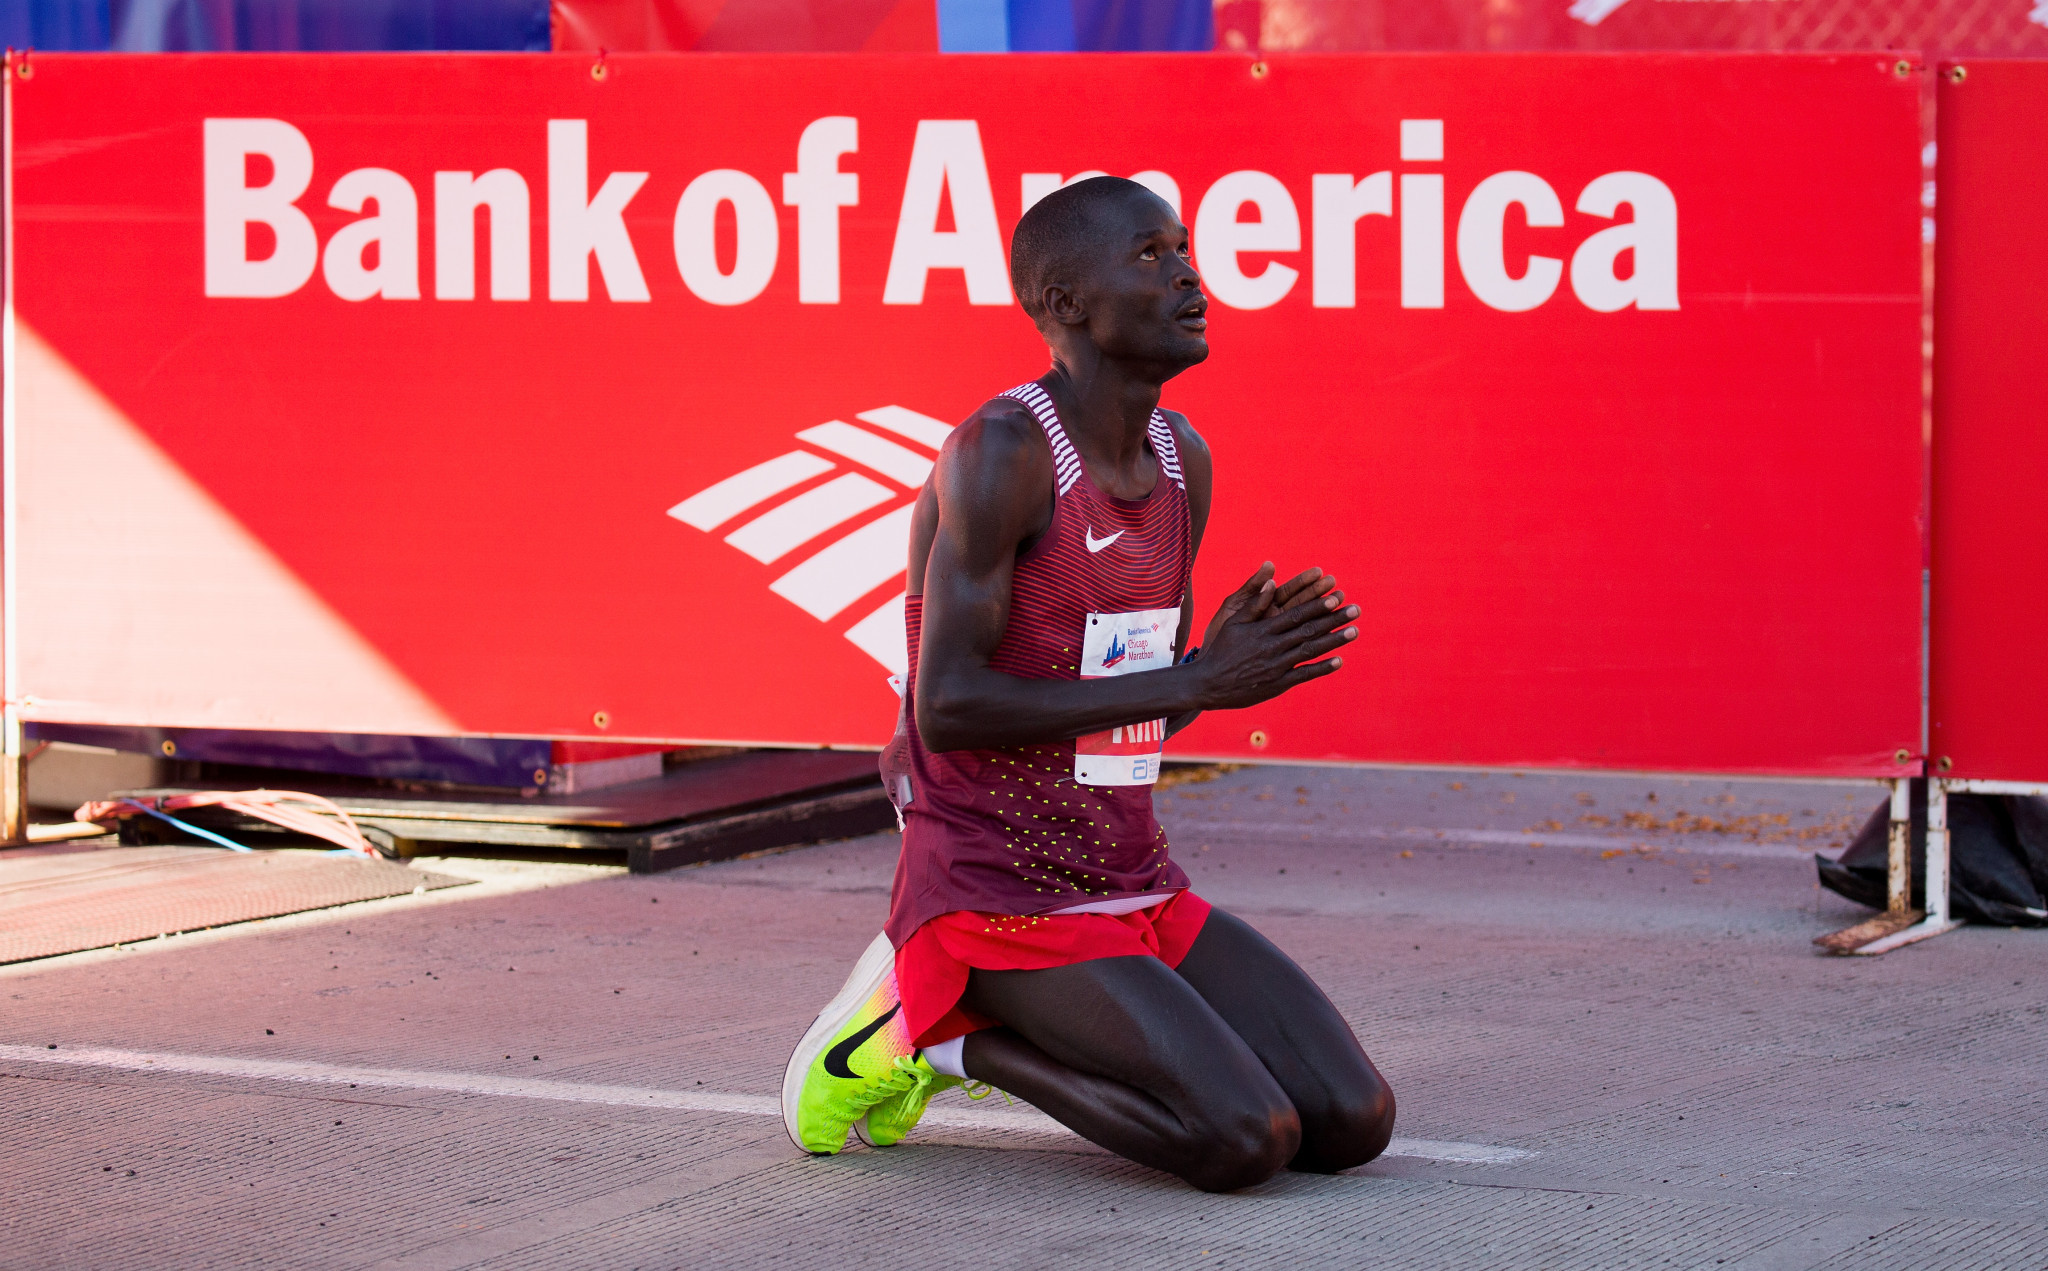 Tirunesh Dibaba dominates, Galen Rupp ends drought at Chicago Marathon